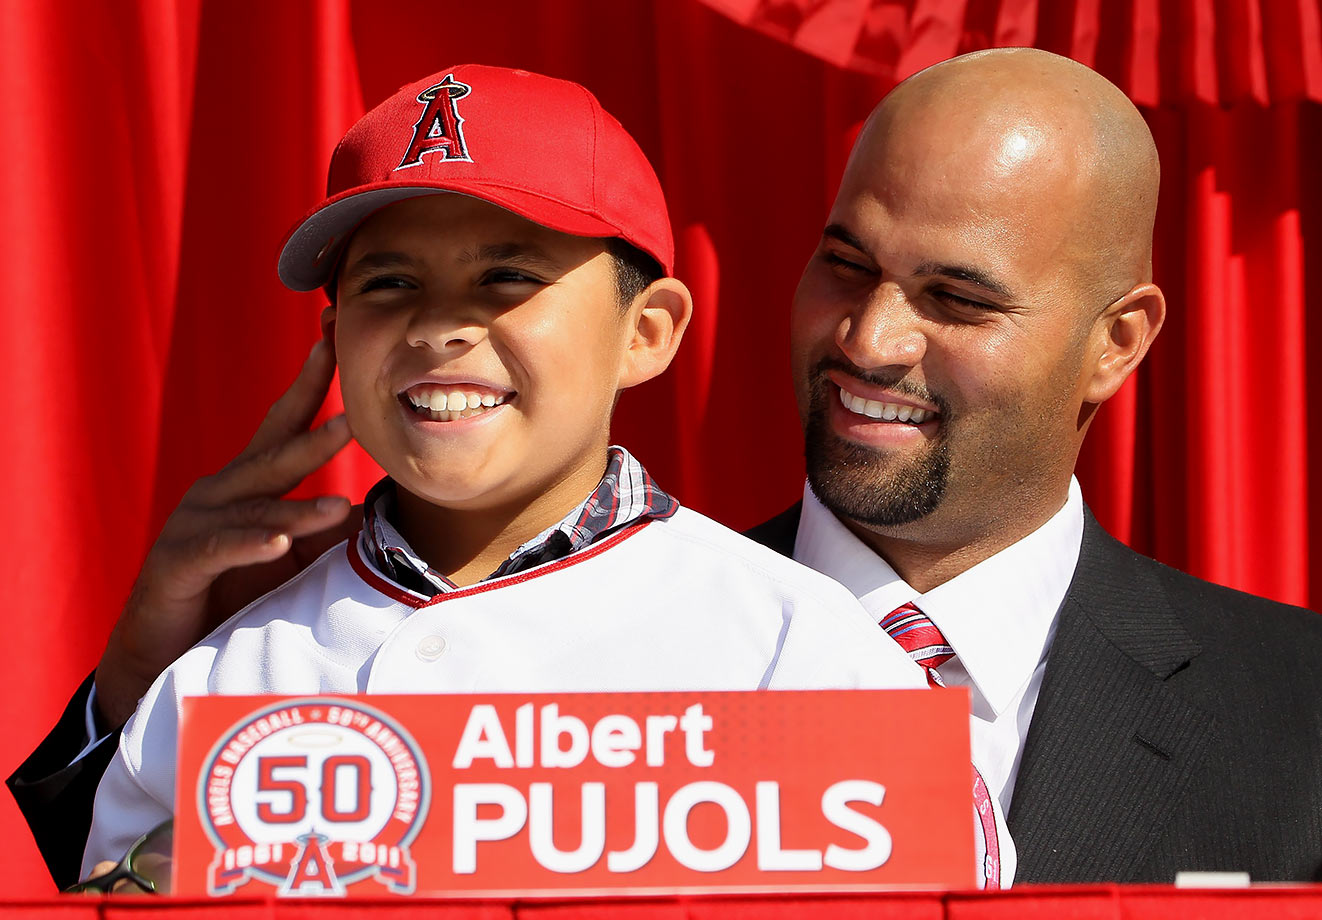 Albert Pujols and son Albert Jr.